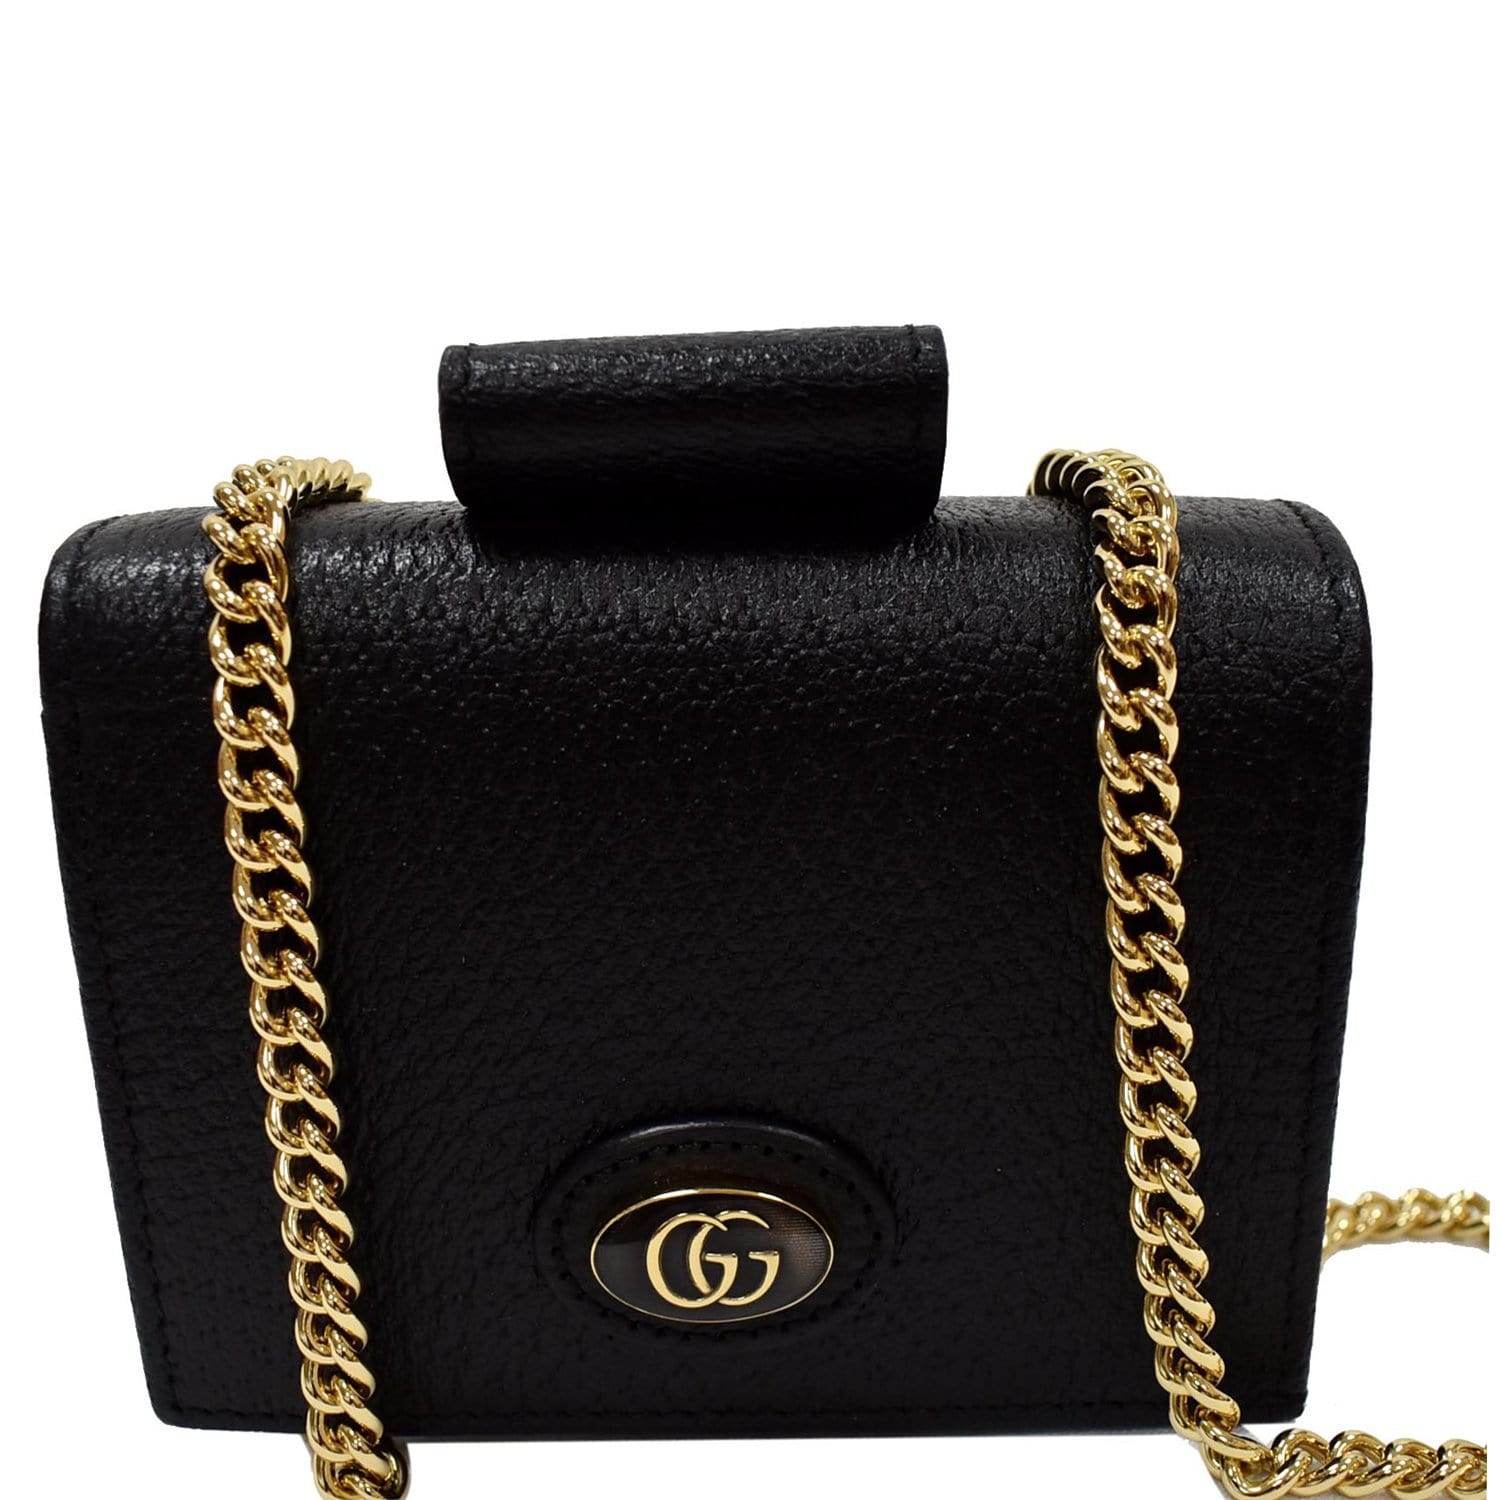 GUCCI GG Small Coin Leather Chain Wallet Black 617195